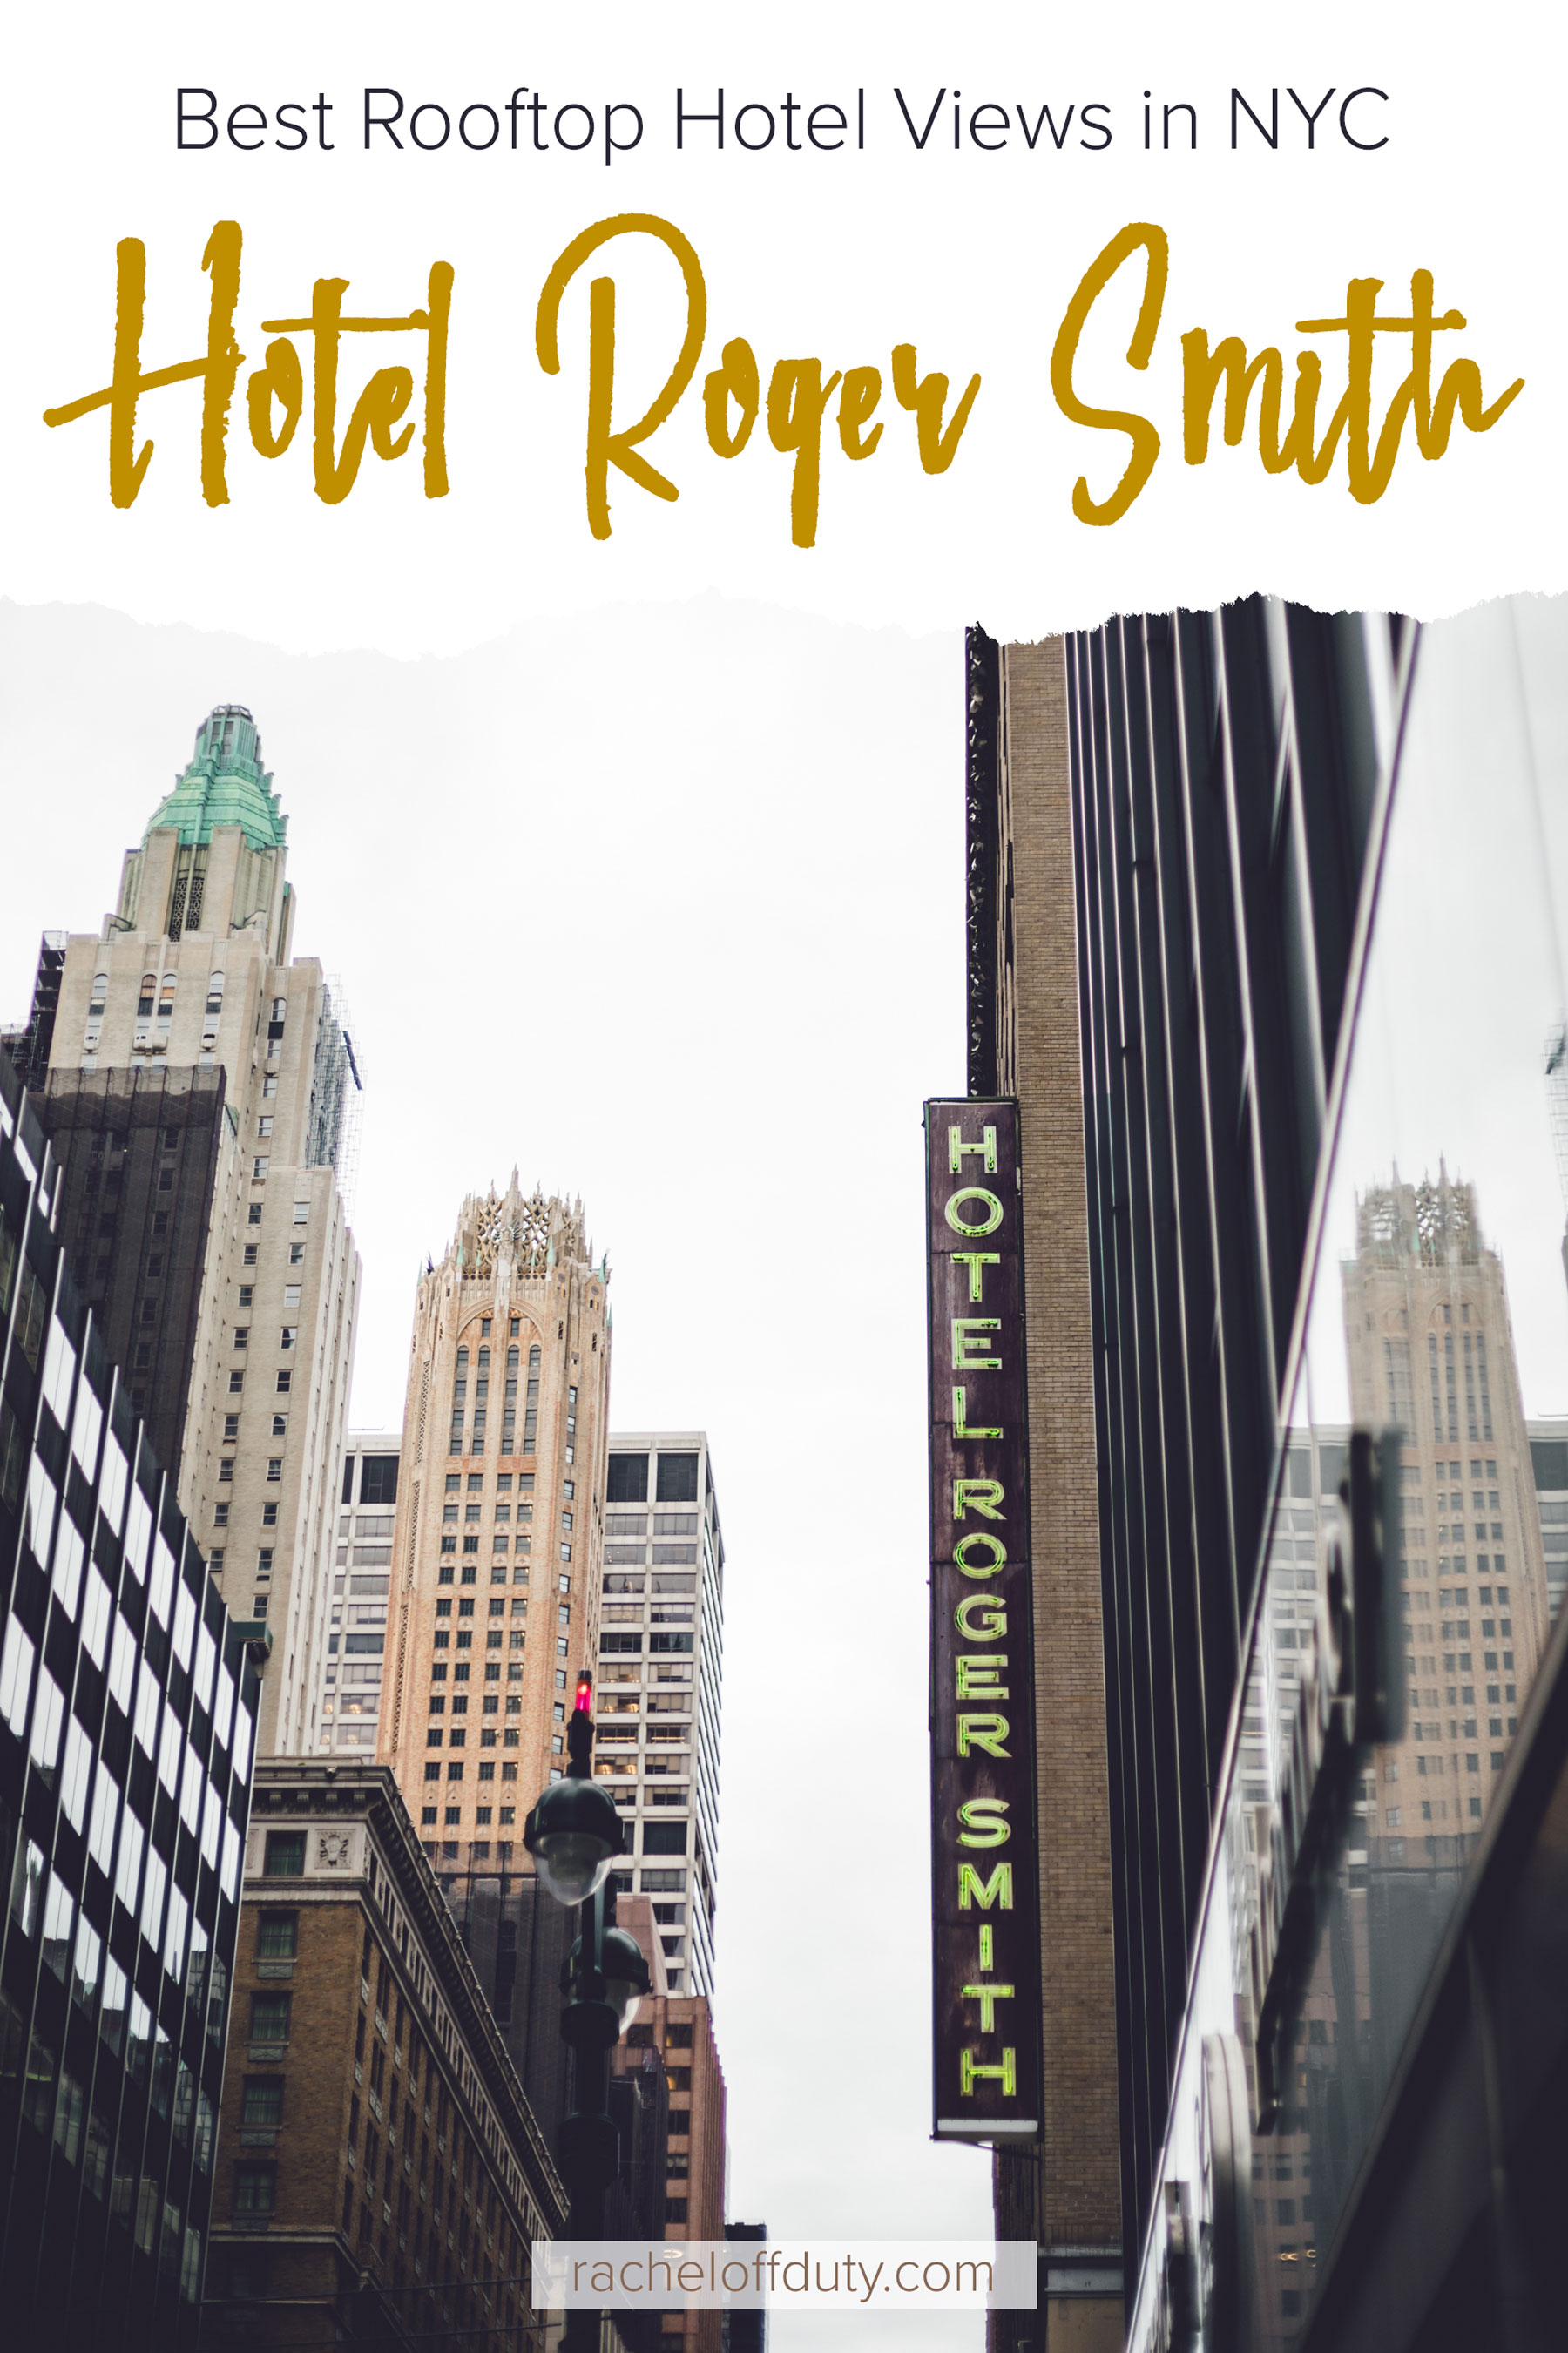 Rachel Off Duty: Where to Stay in Manhattan - the Hotel Roger Smith